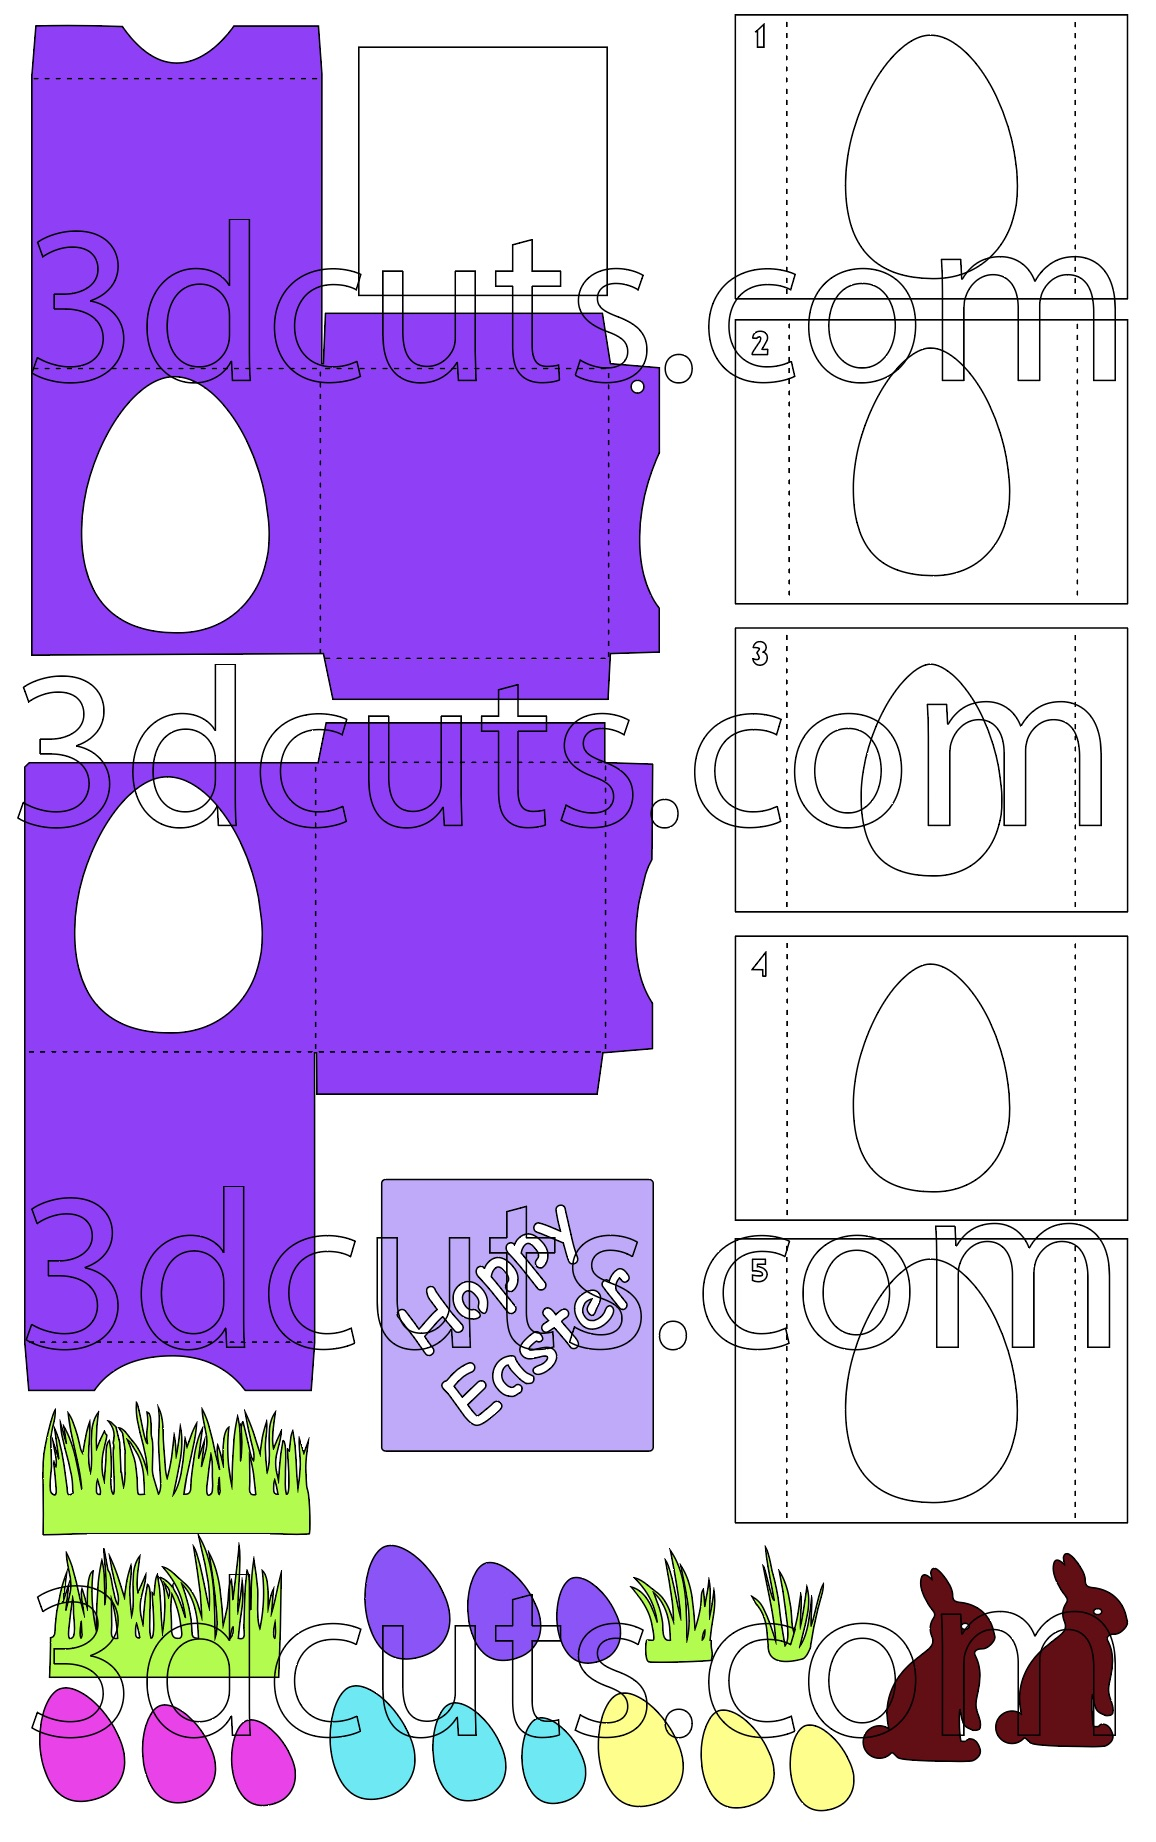 Easter Bunny 3D Cube Card by 3dCuts.com, by Marji Roy, Cutting files in .svg, .dxf, png and .pdf formats for use with Silhouette, Cricut and Brother cutting machines, paper crafting files, SVG Files